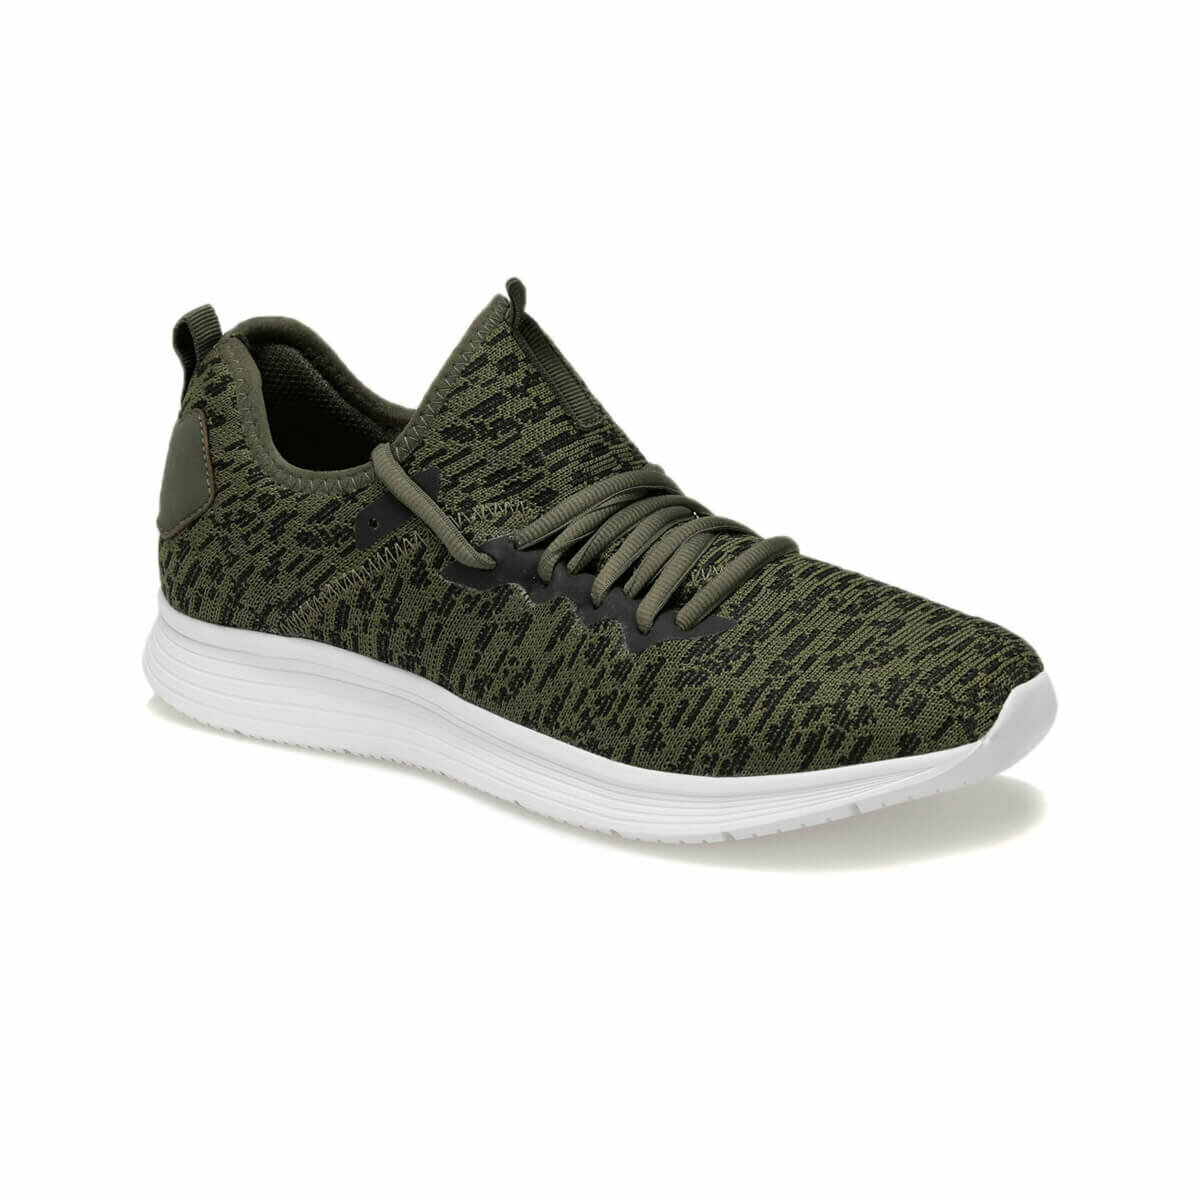 FLO ADRANO Khaki Men 'S Sneaker Shoes Torex